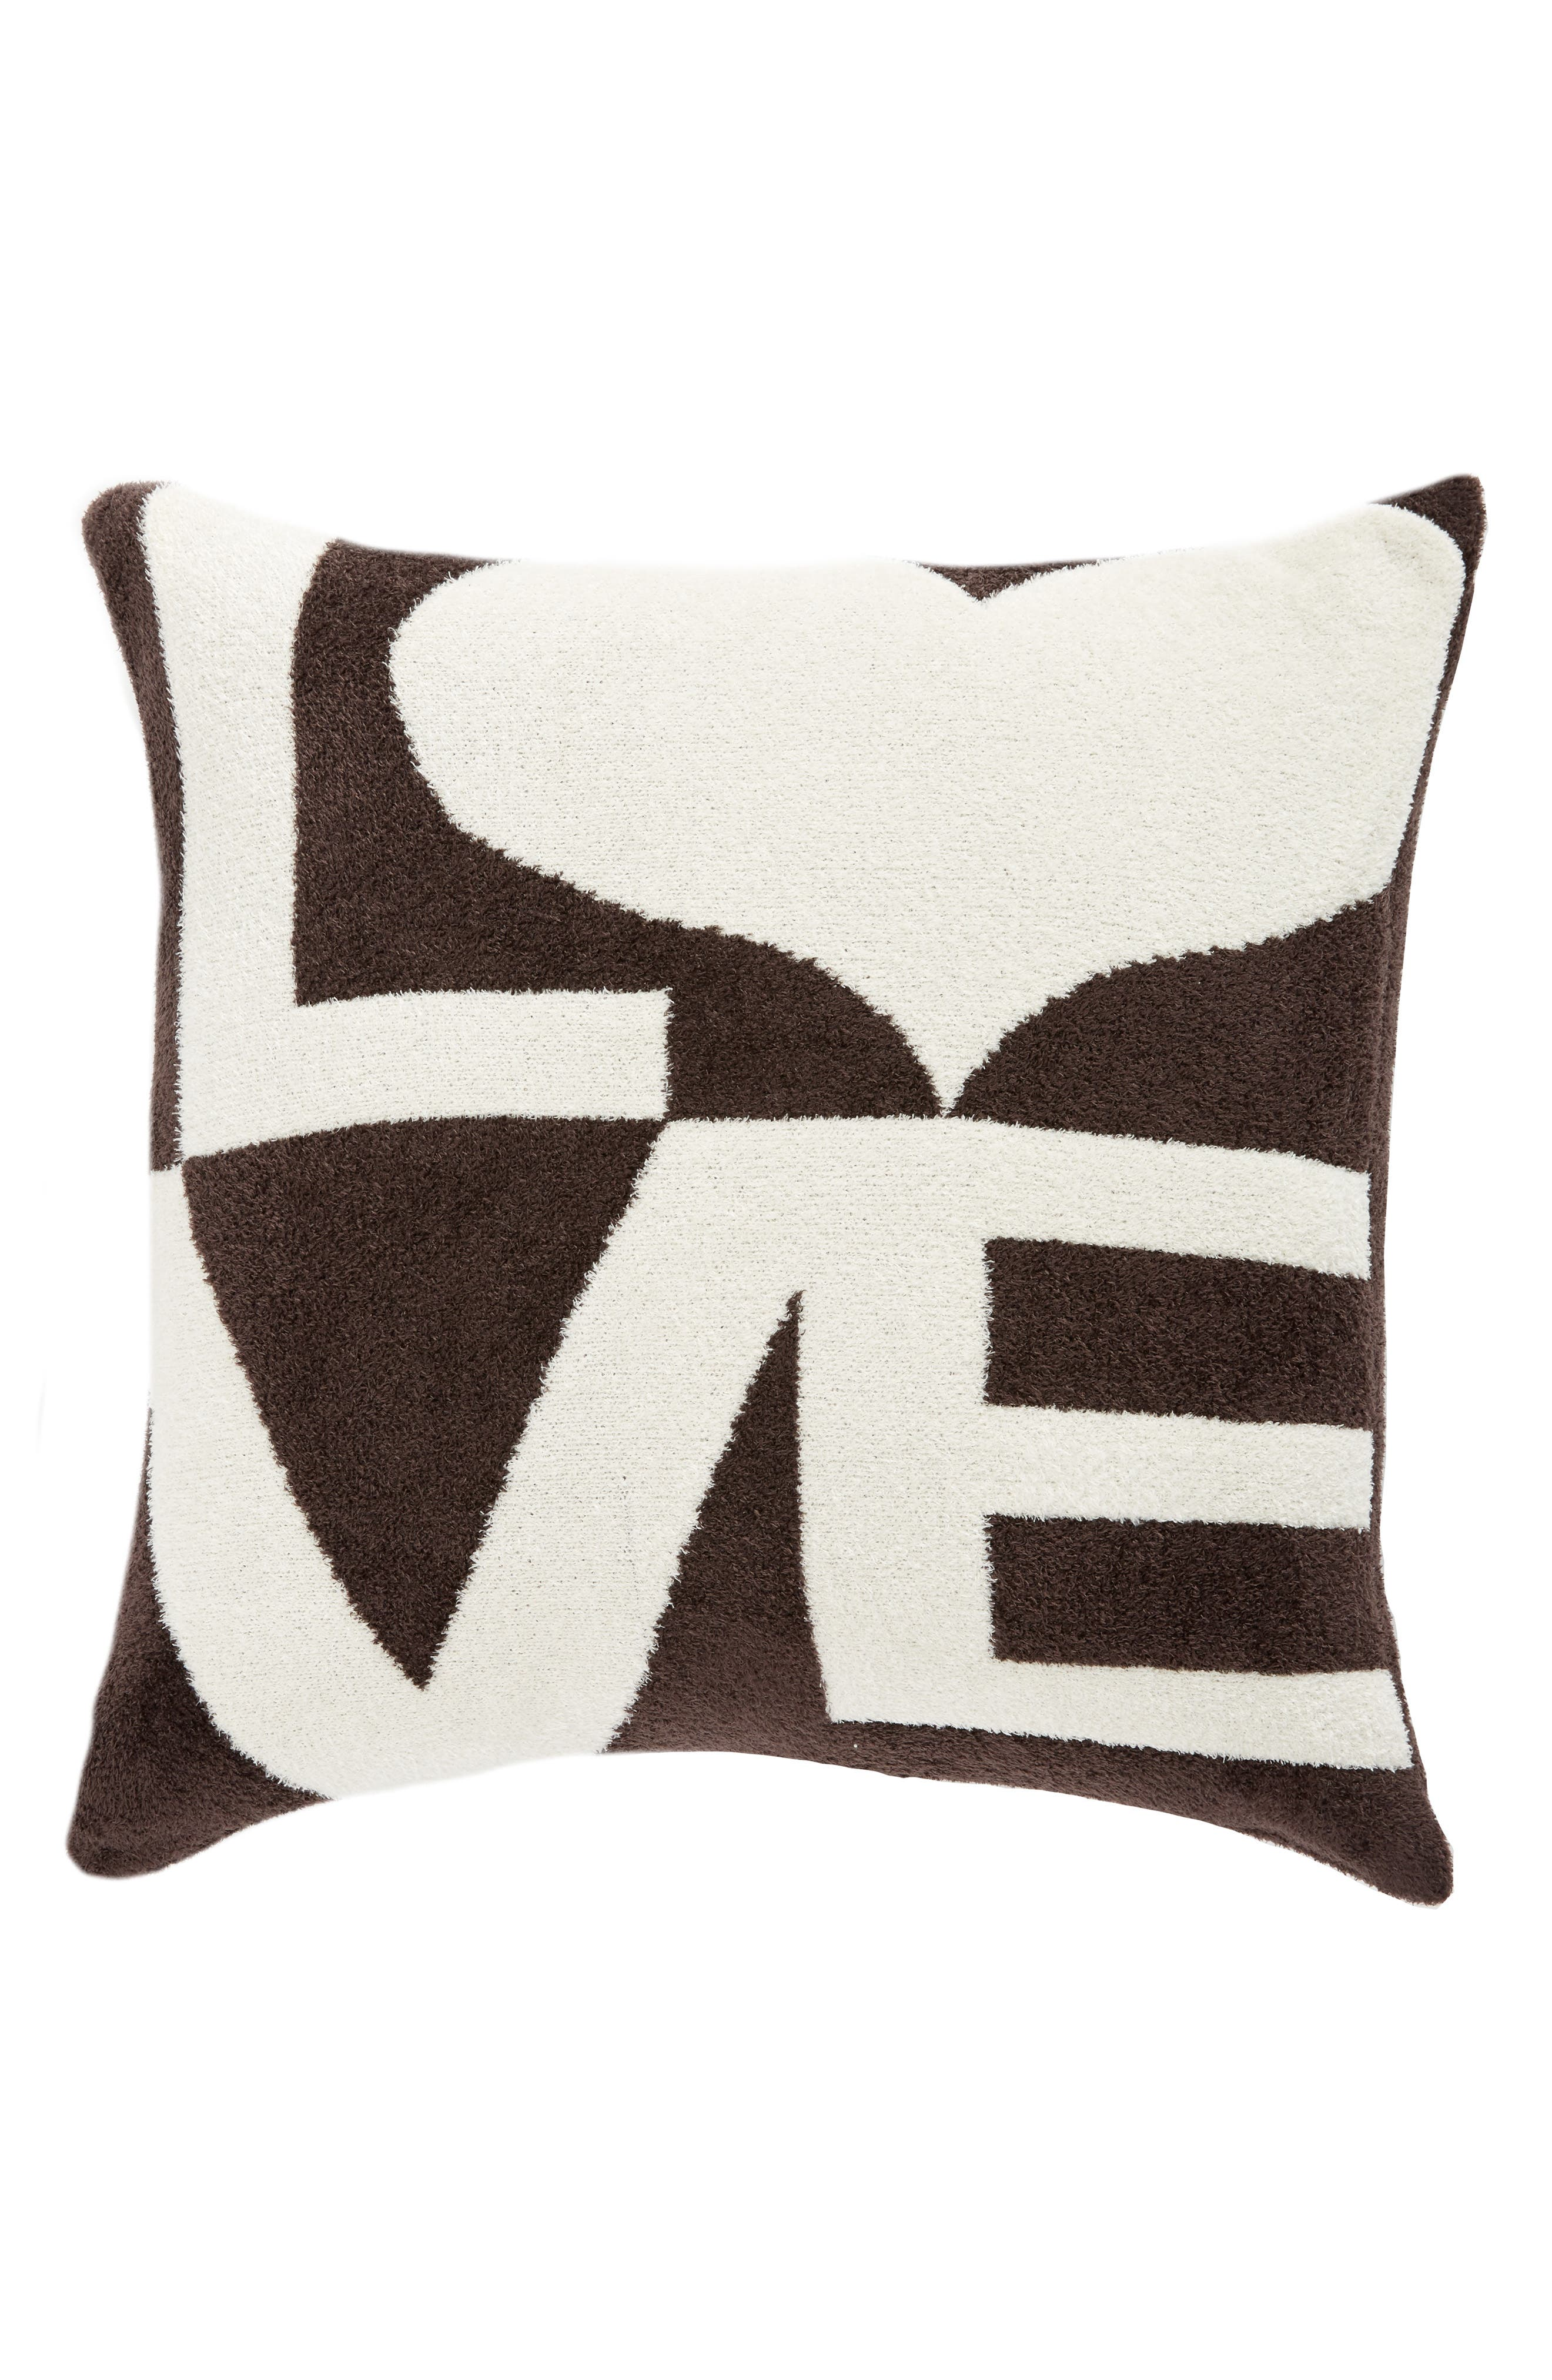 Dolce Love Throw Pillow,                             Main thumbnail 1, color,                             CHOCOLATE